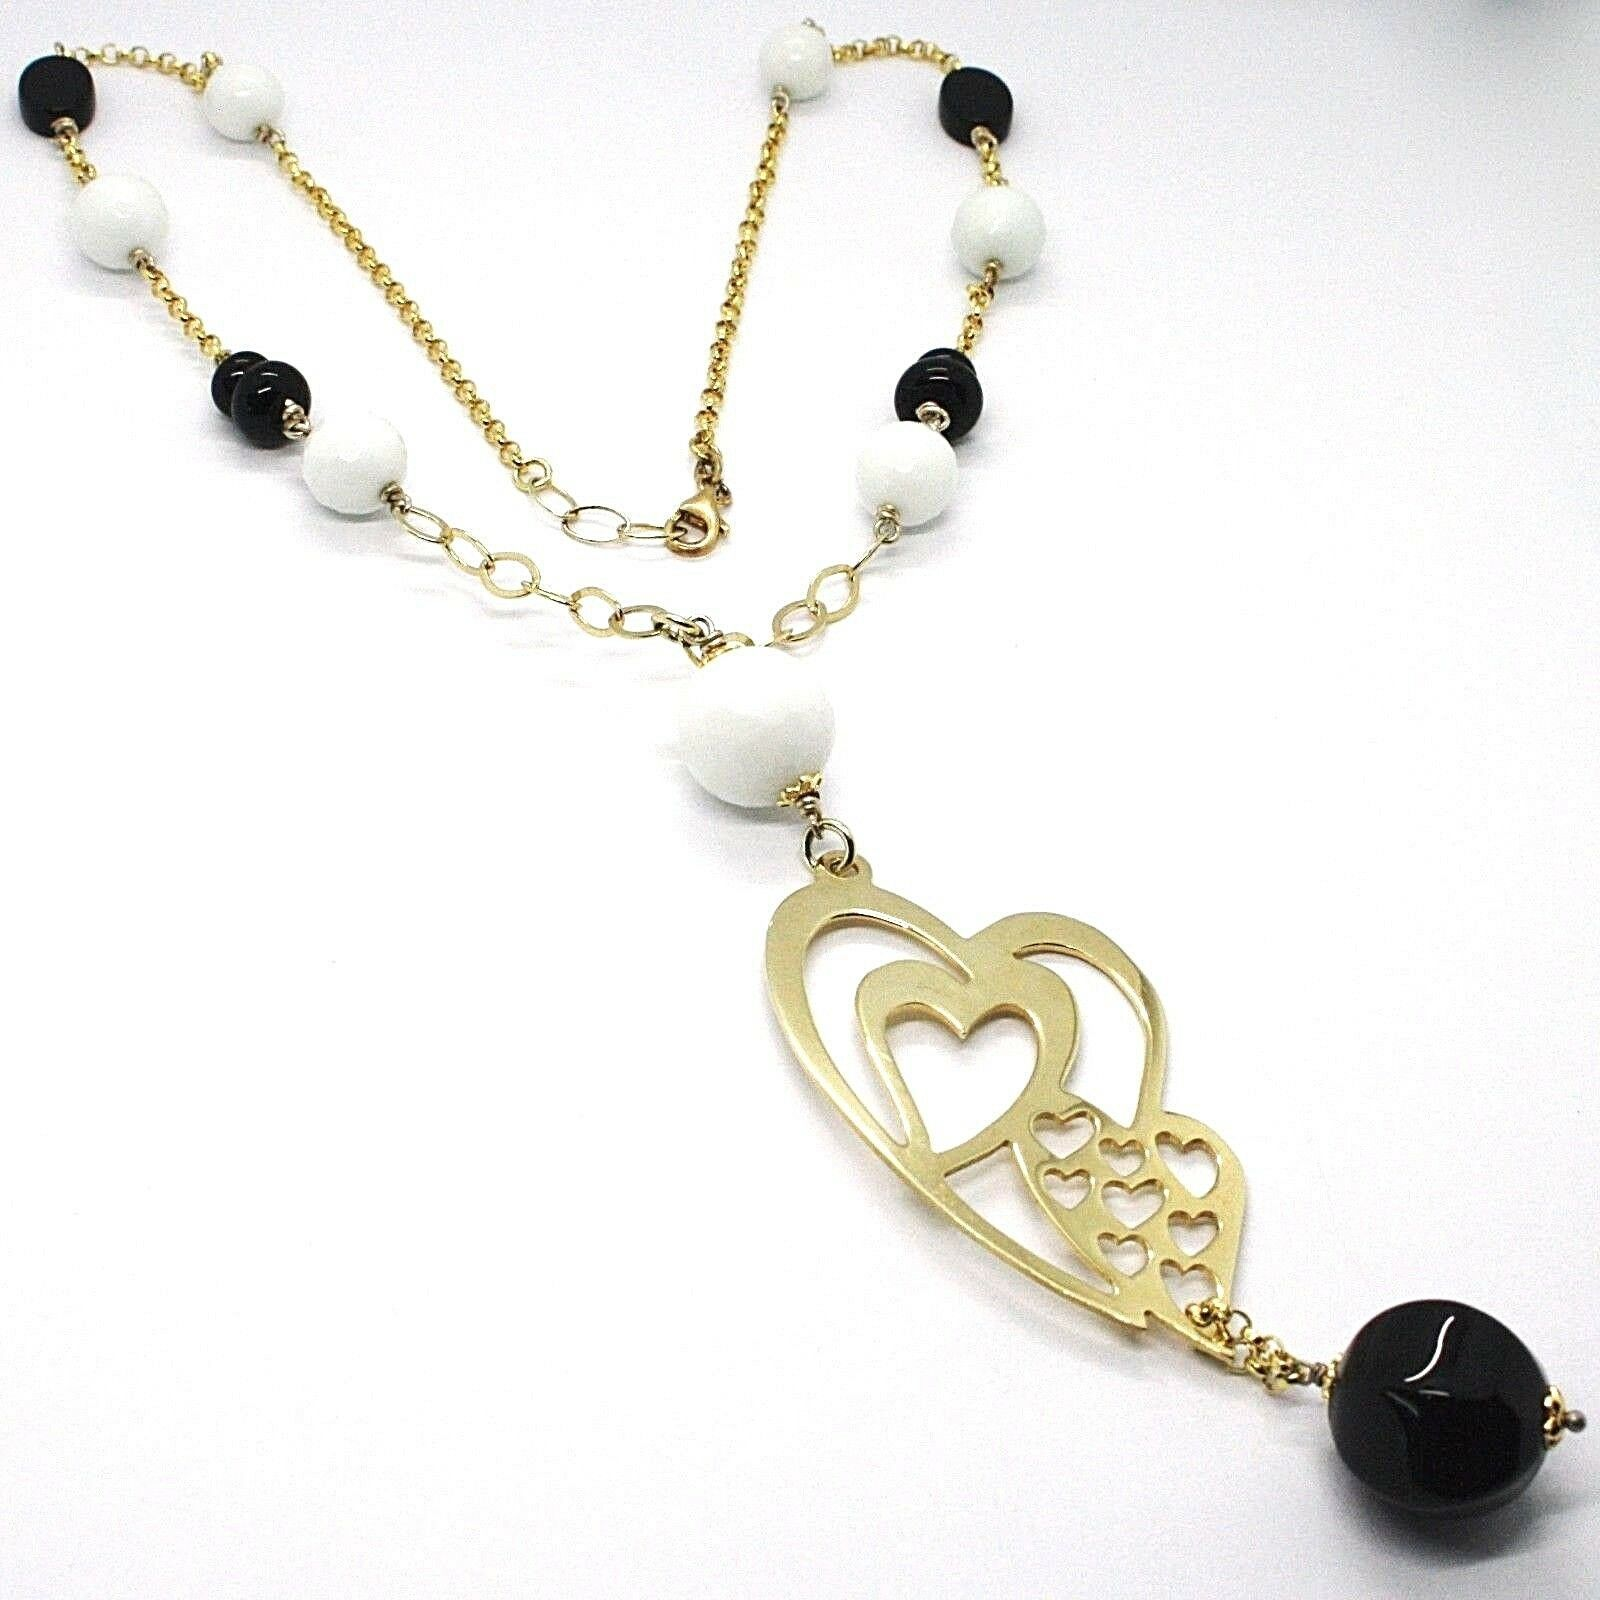 Necklace Silver 925, Yellow, Onyx, Agate White, Double Heart, Pendant